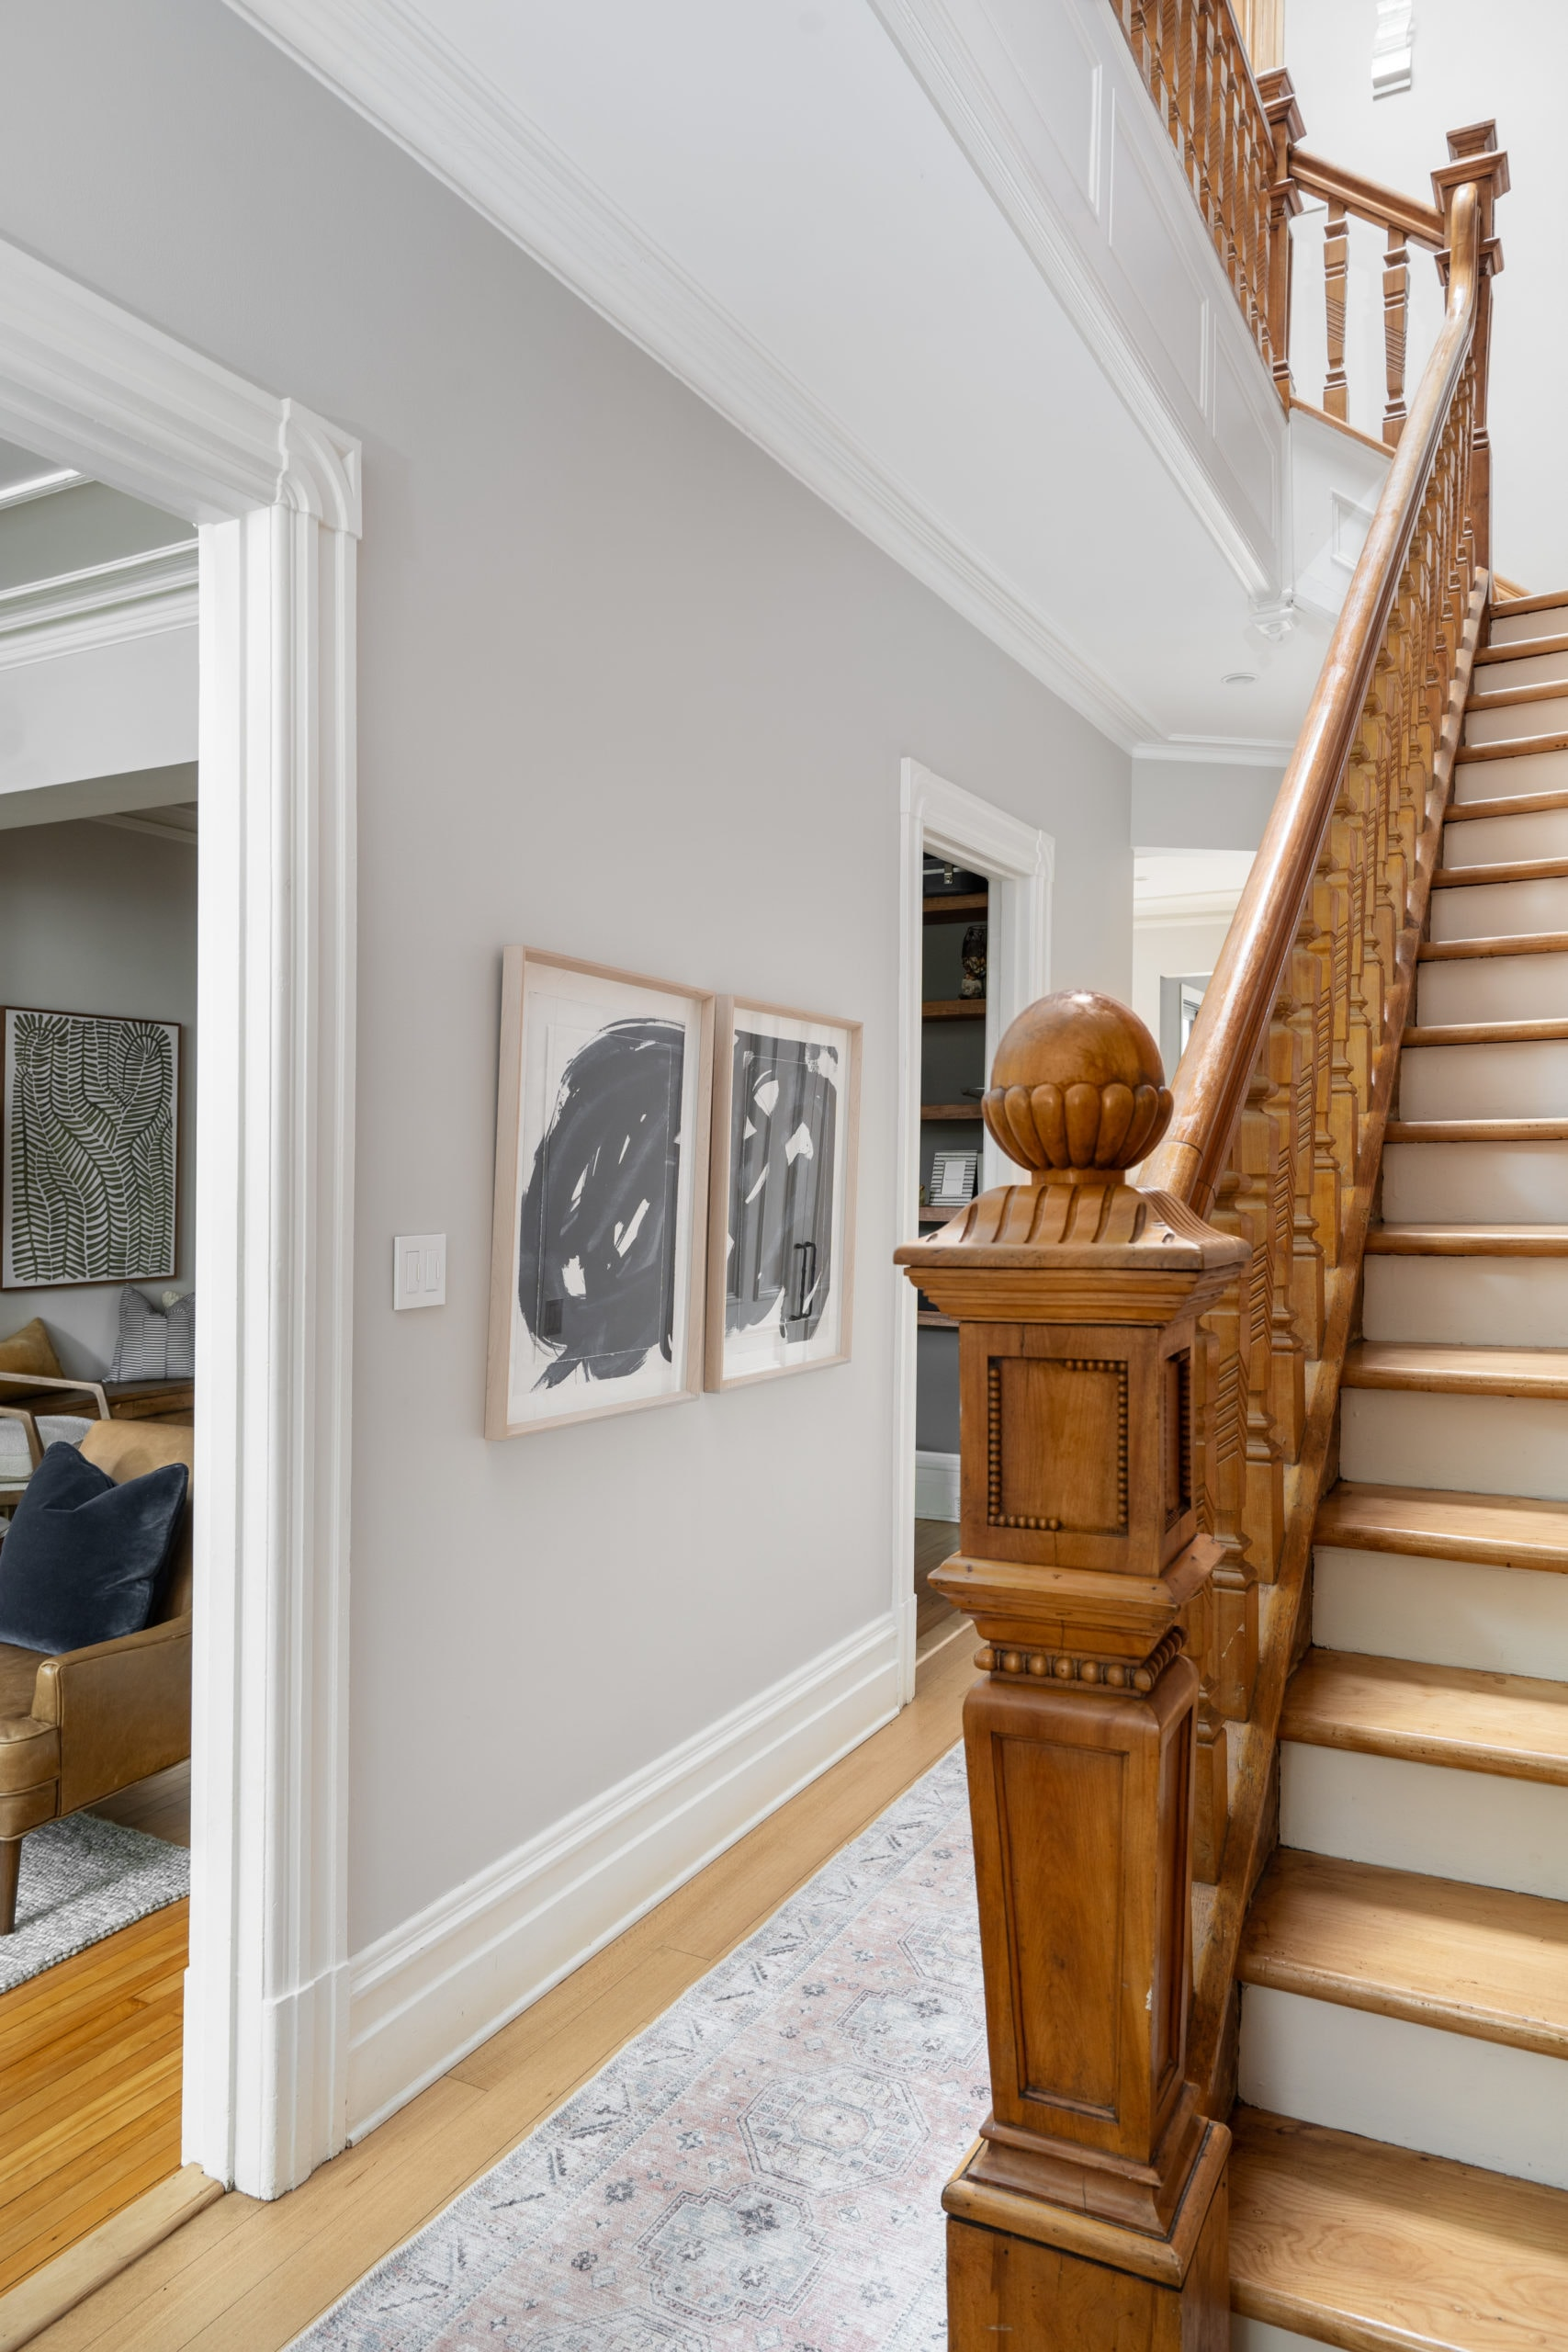 Staircase with a focus on the wooden handrail